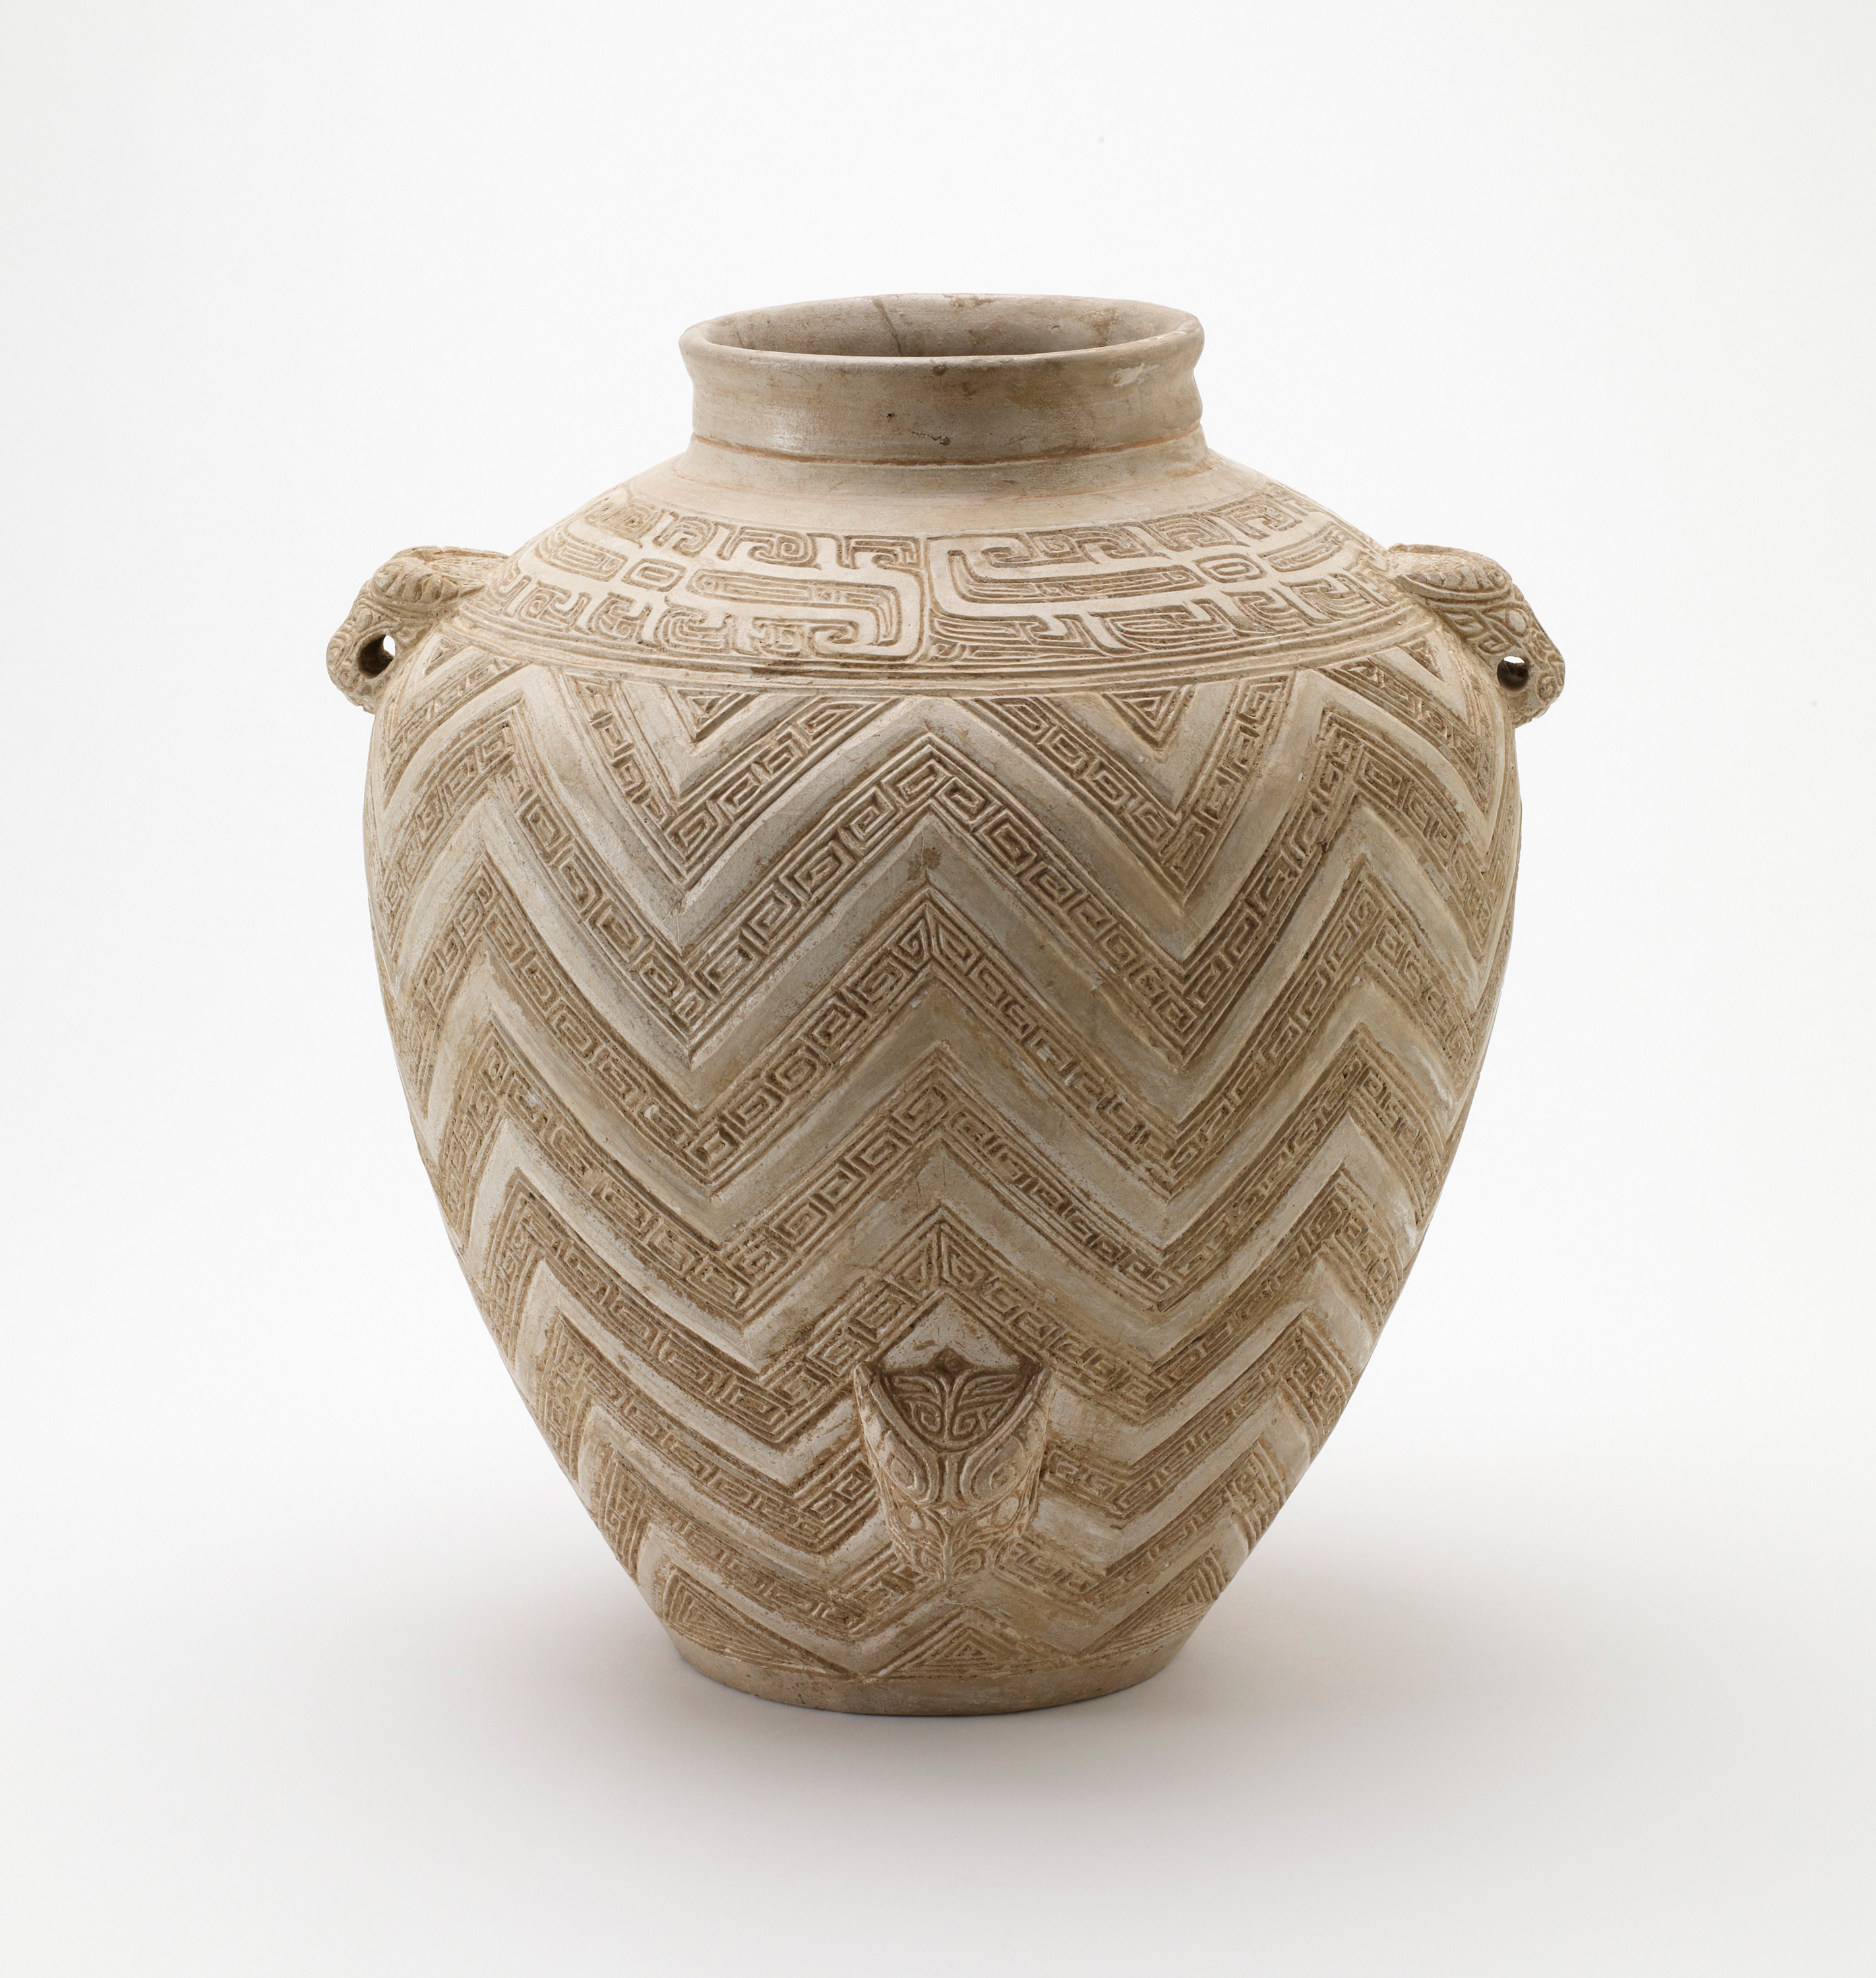 Jar with Dragons, 1100 BCE — Ancient China